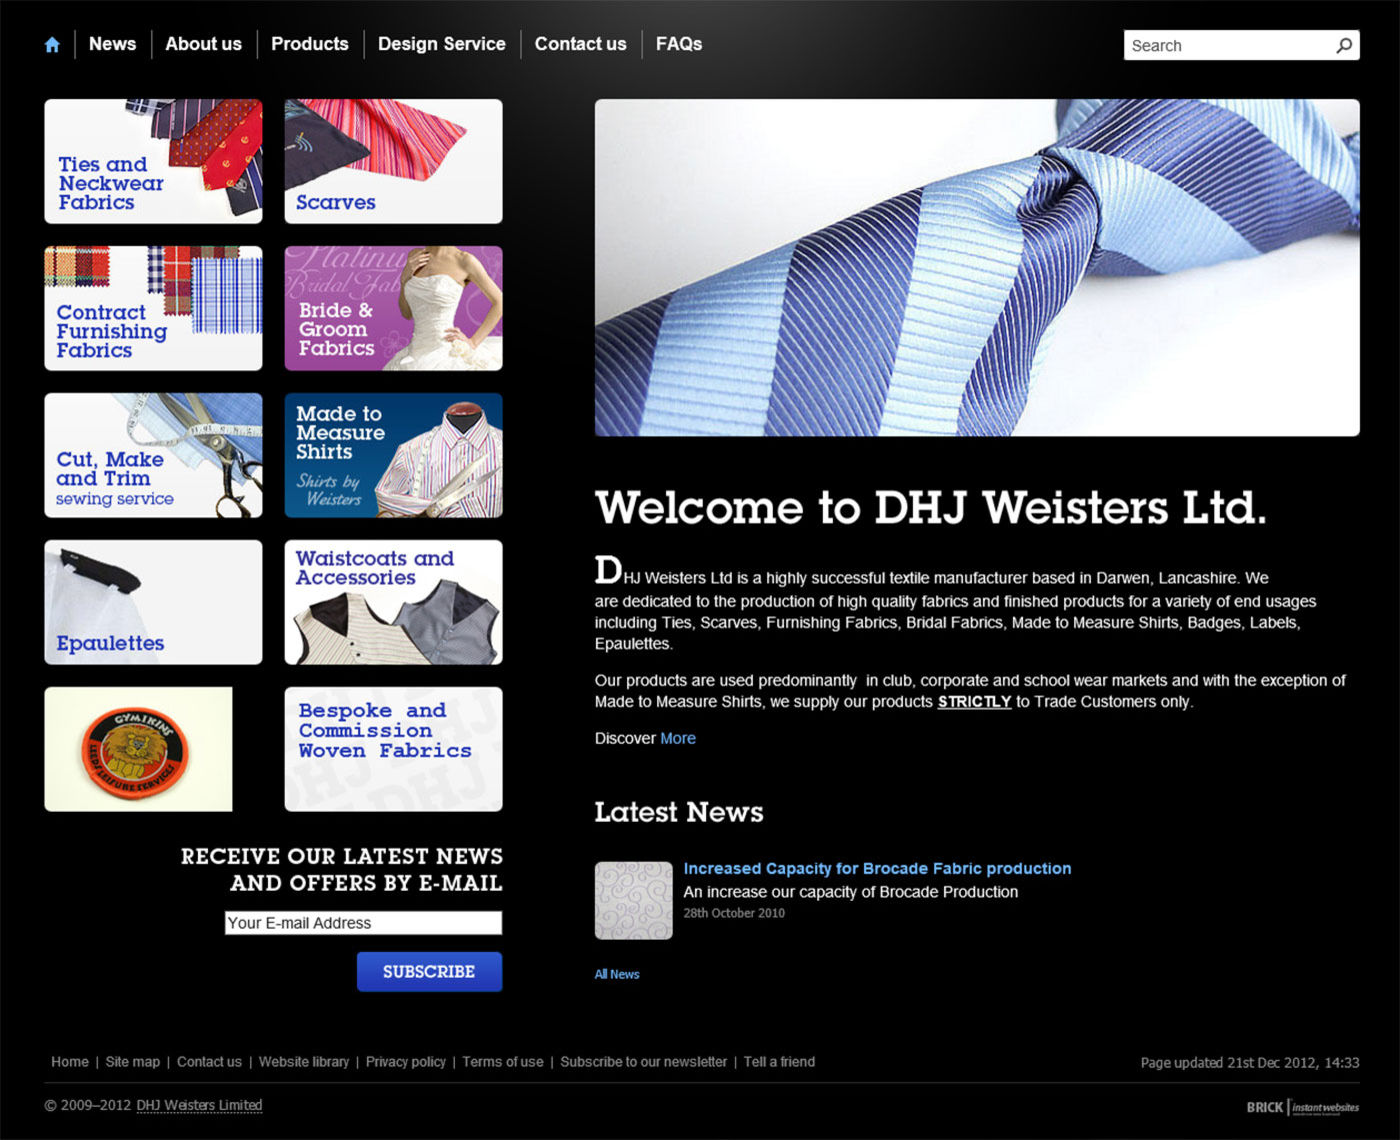 DHJ Weisters Limited (2012) Homepage